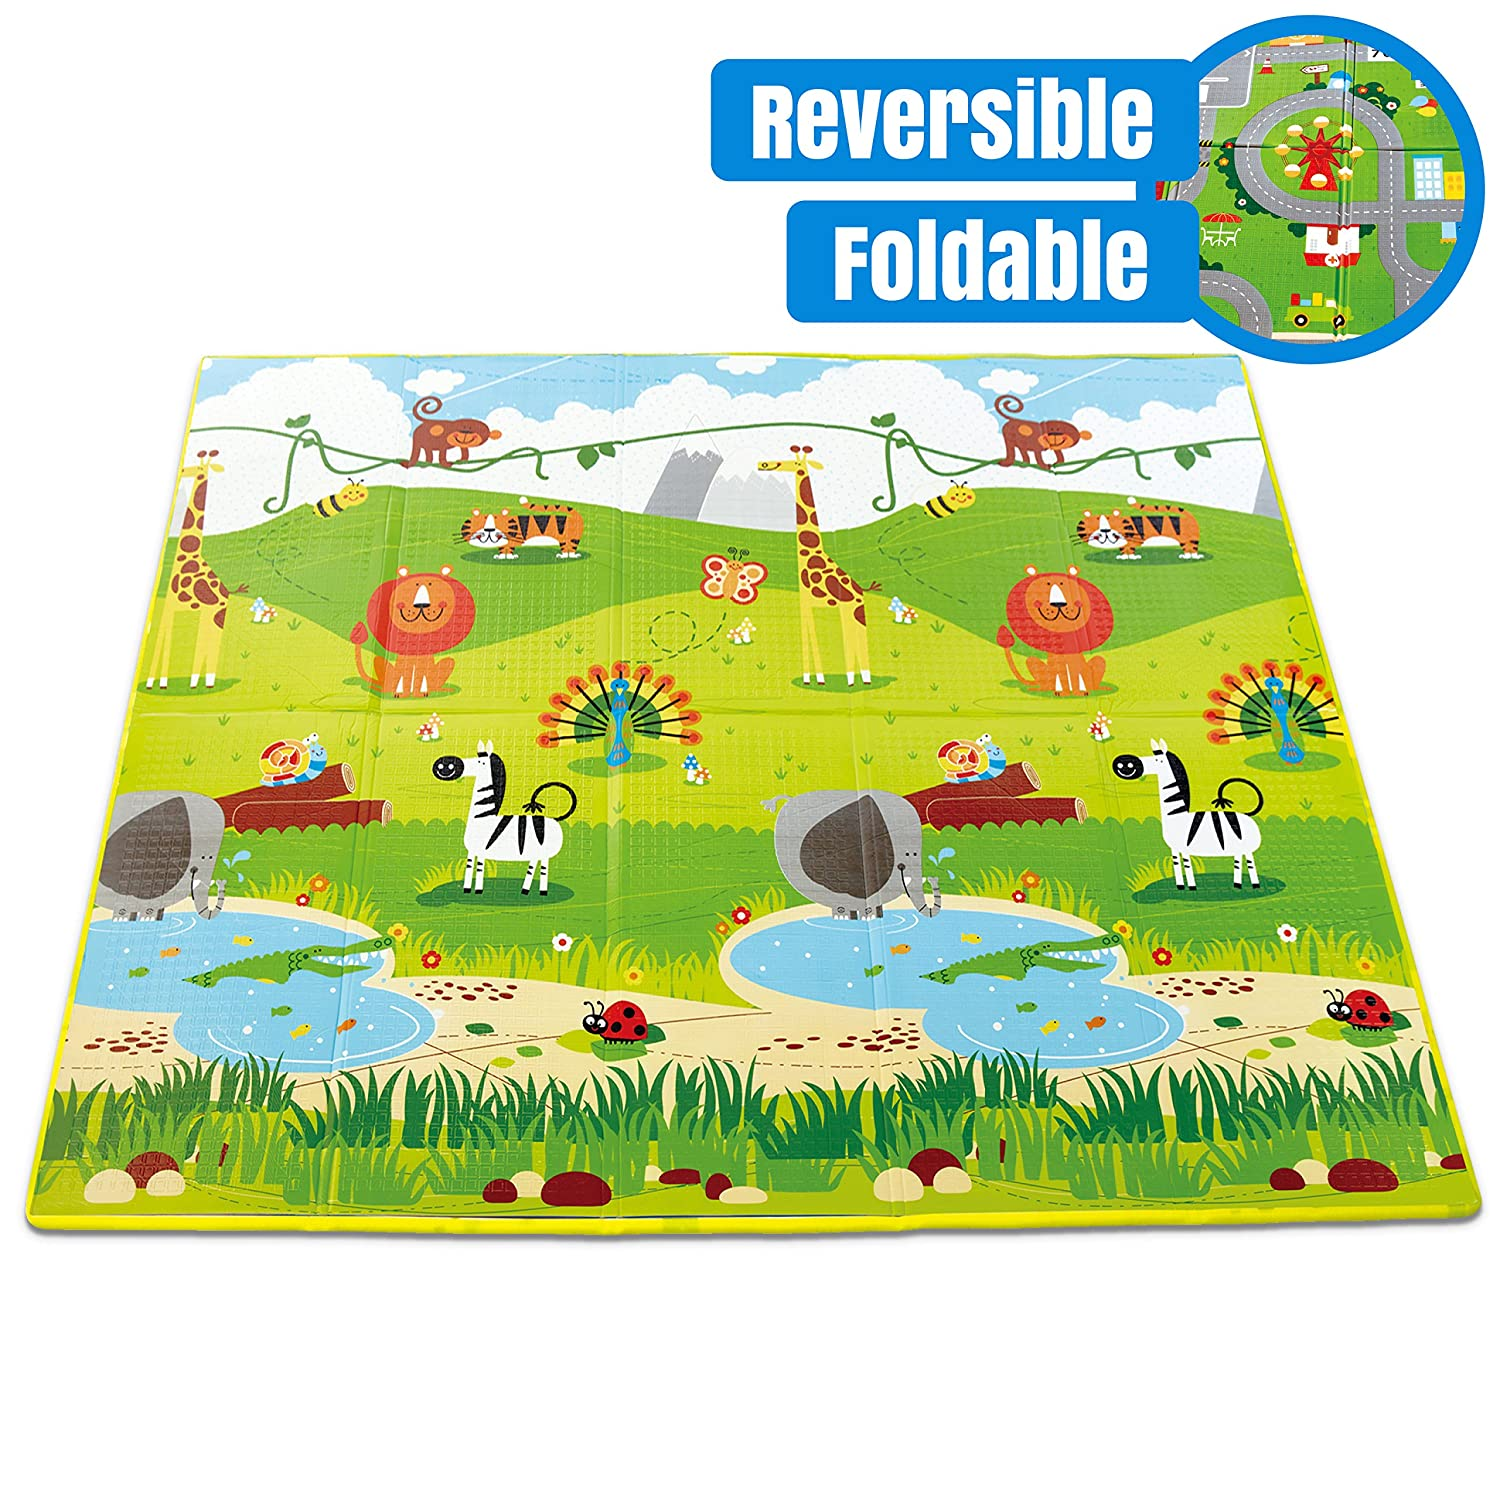 Amazon Best Sellers Best Baby Gyms & Playmats